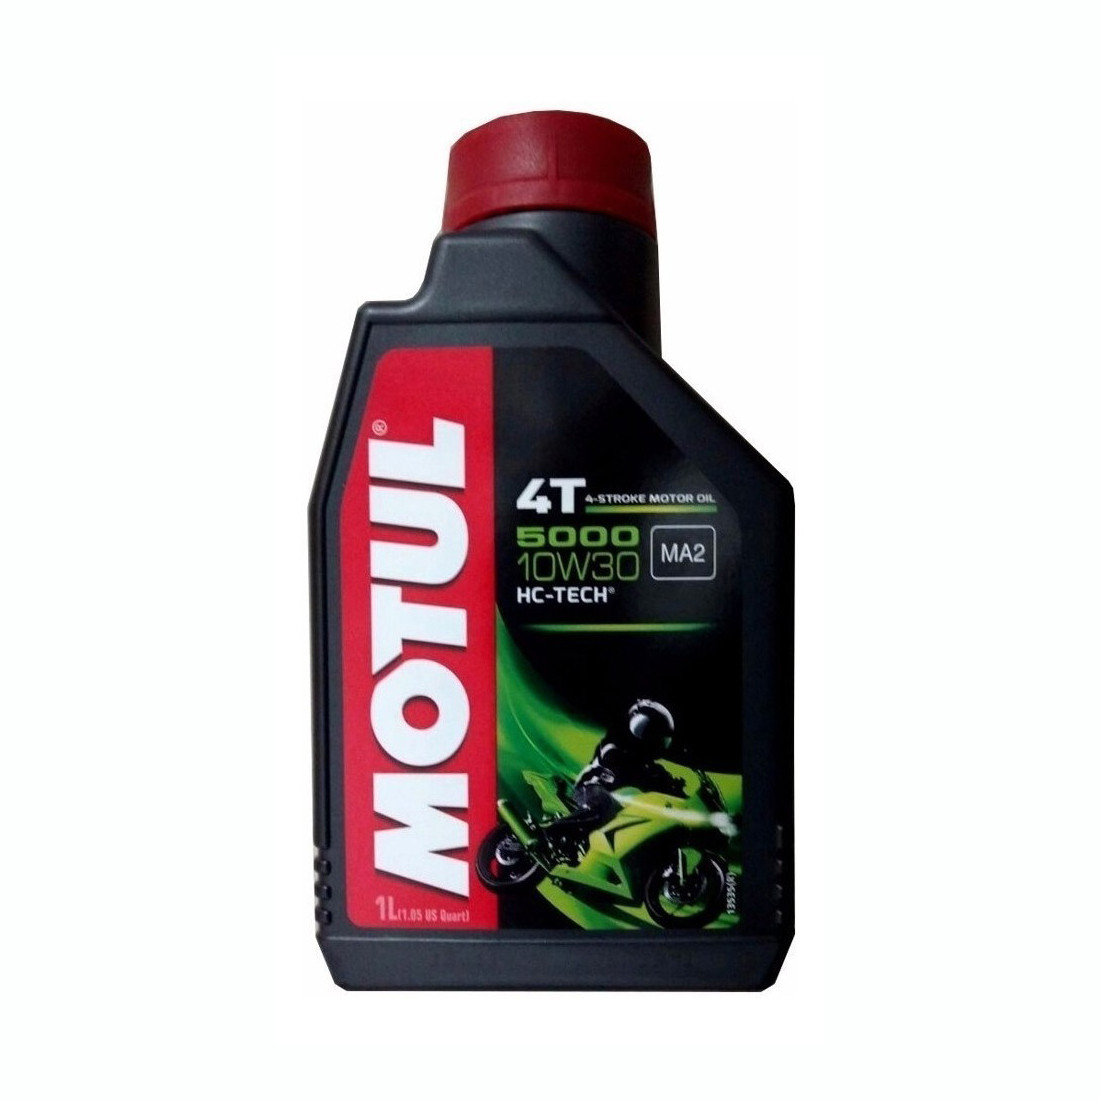 Aceite Motul Mineral 5000 10W30 4T